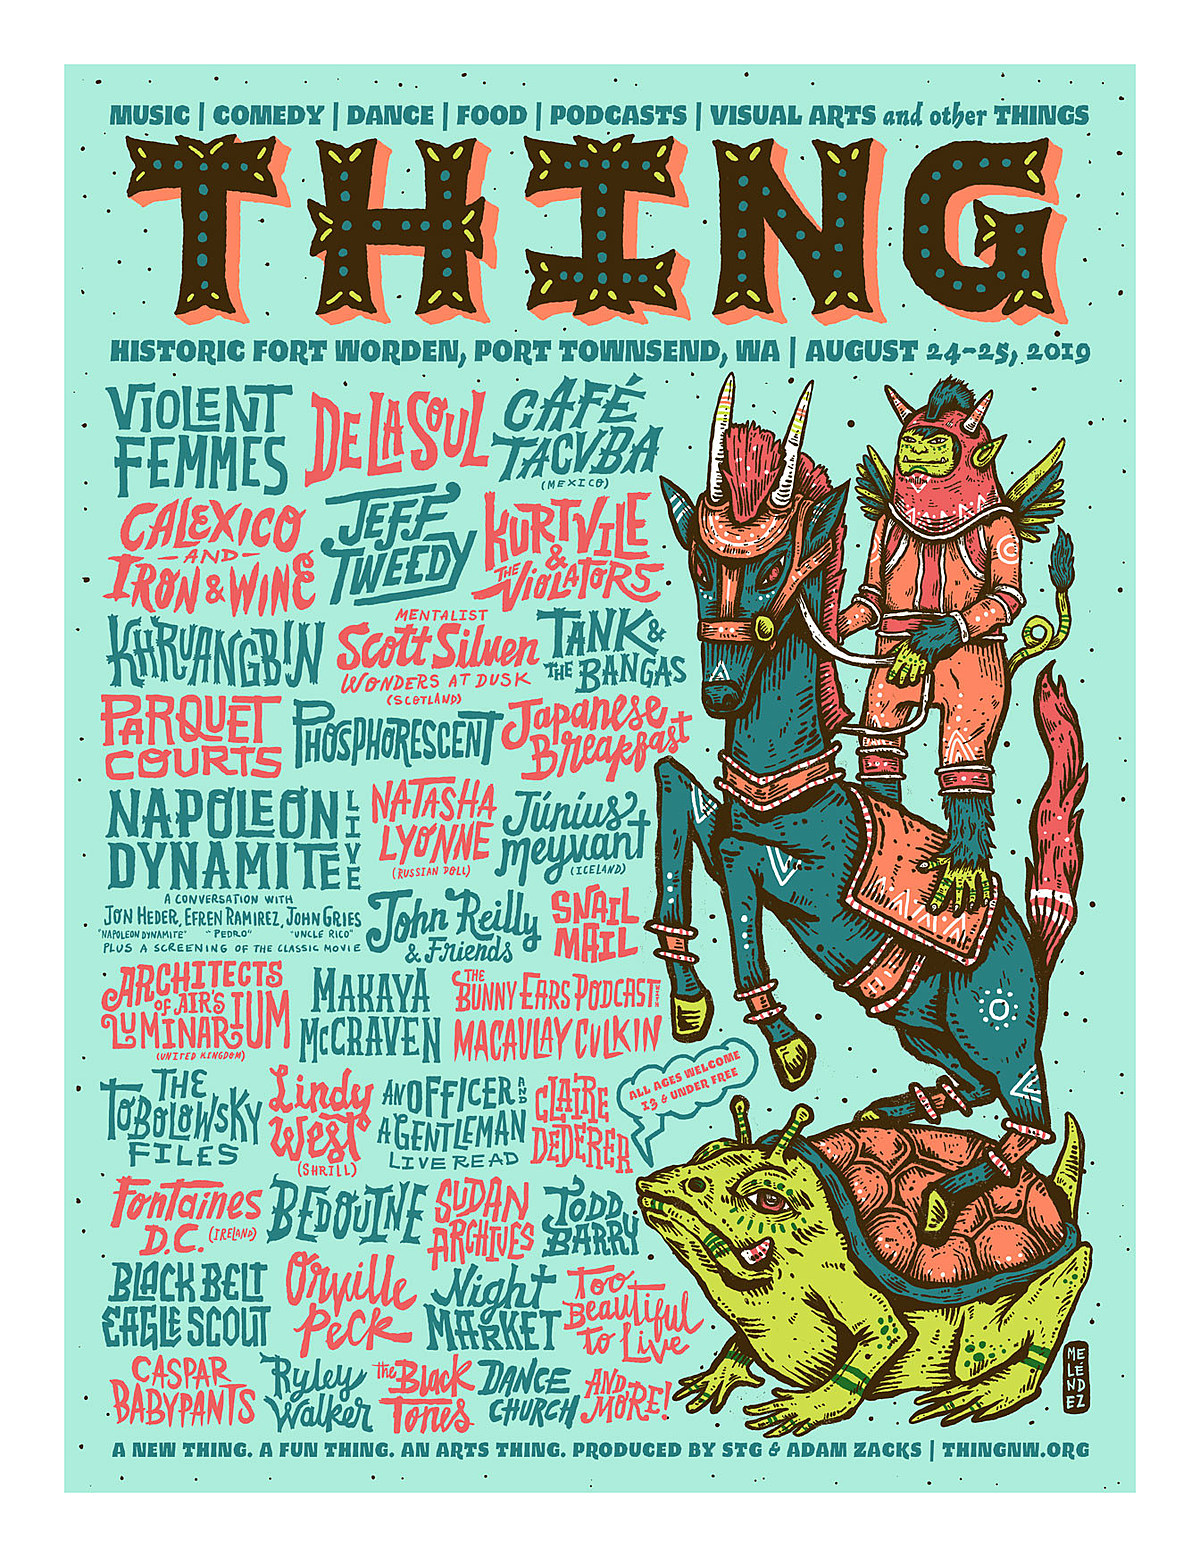 Sasquatch founder starts new fest, THING (inaugural lineup announced)